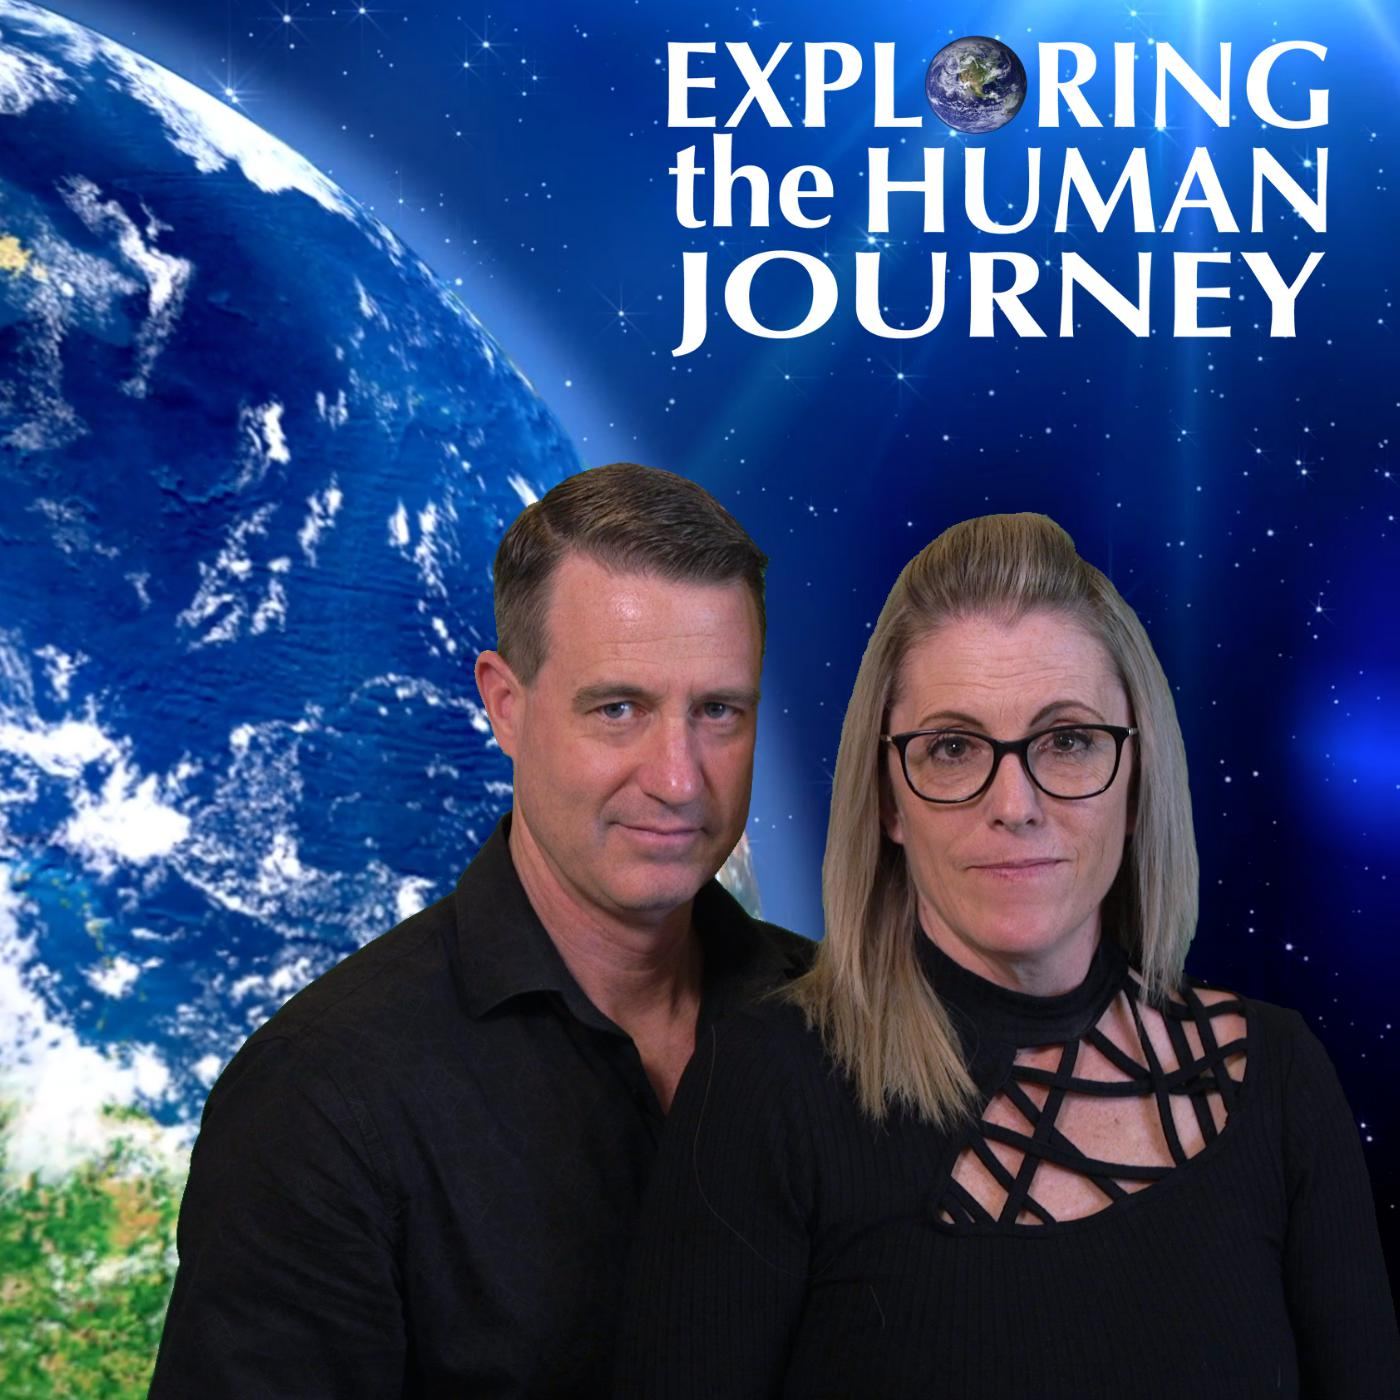 Exploring The Human Journey podcast - David & Gayle Marsh